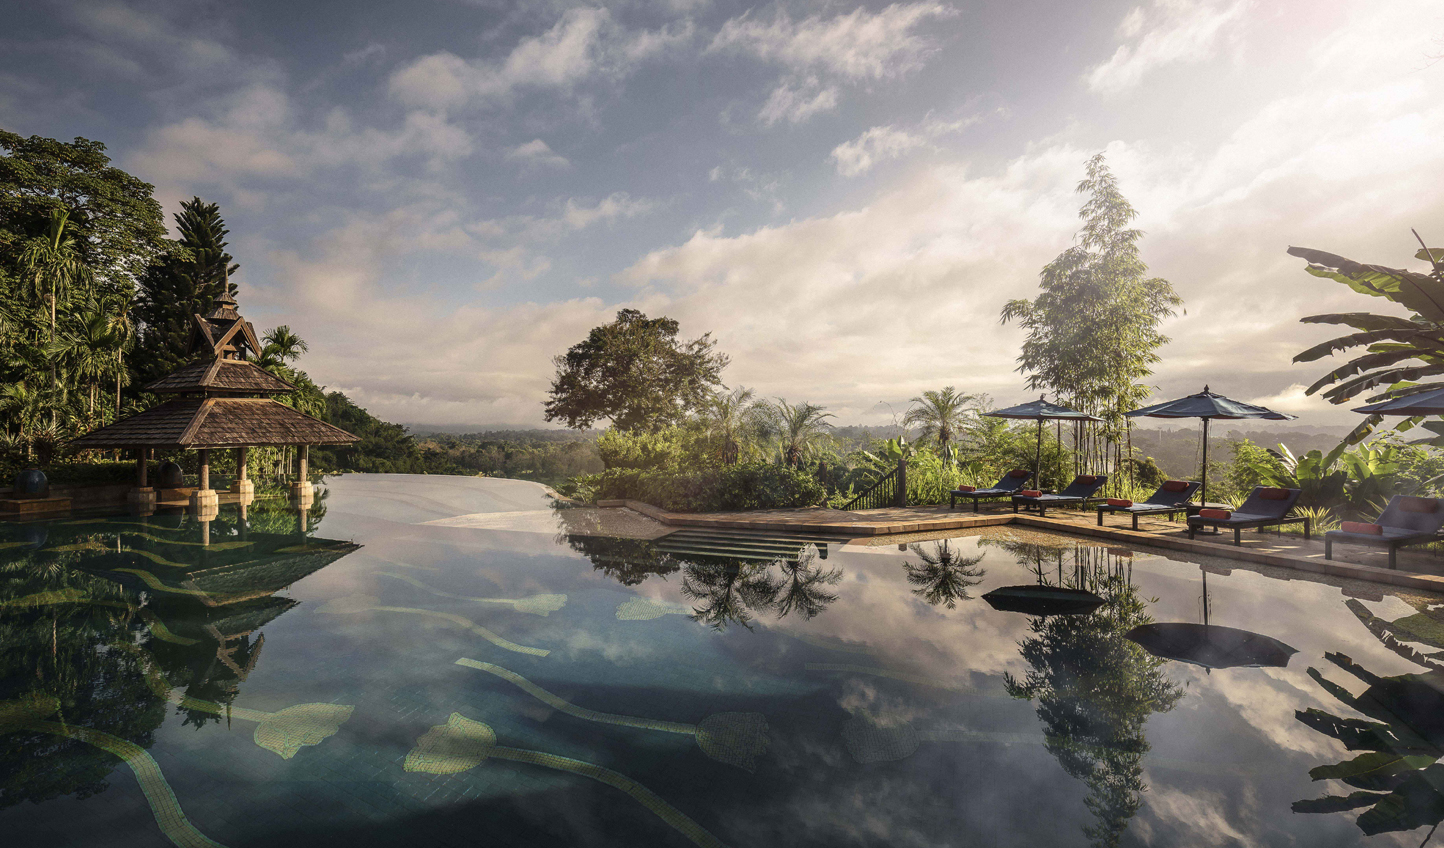 Drink in the views from the infinity pool